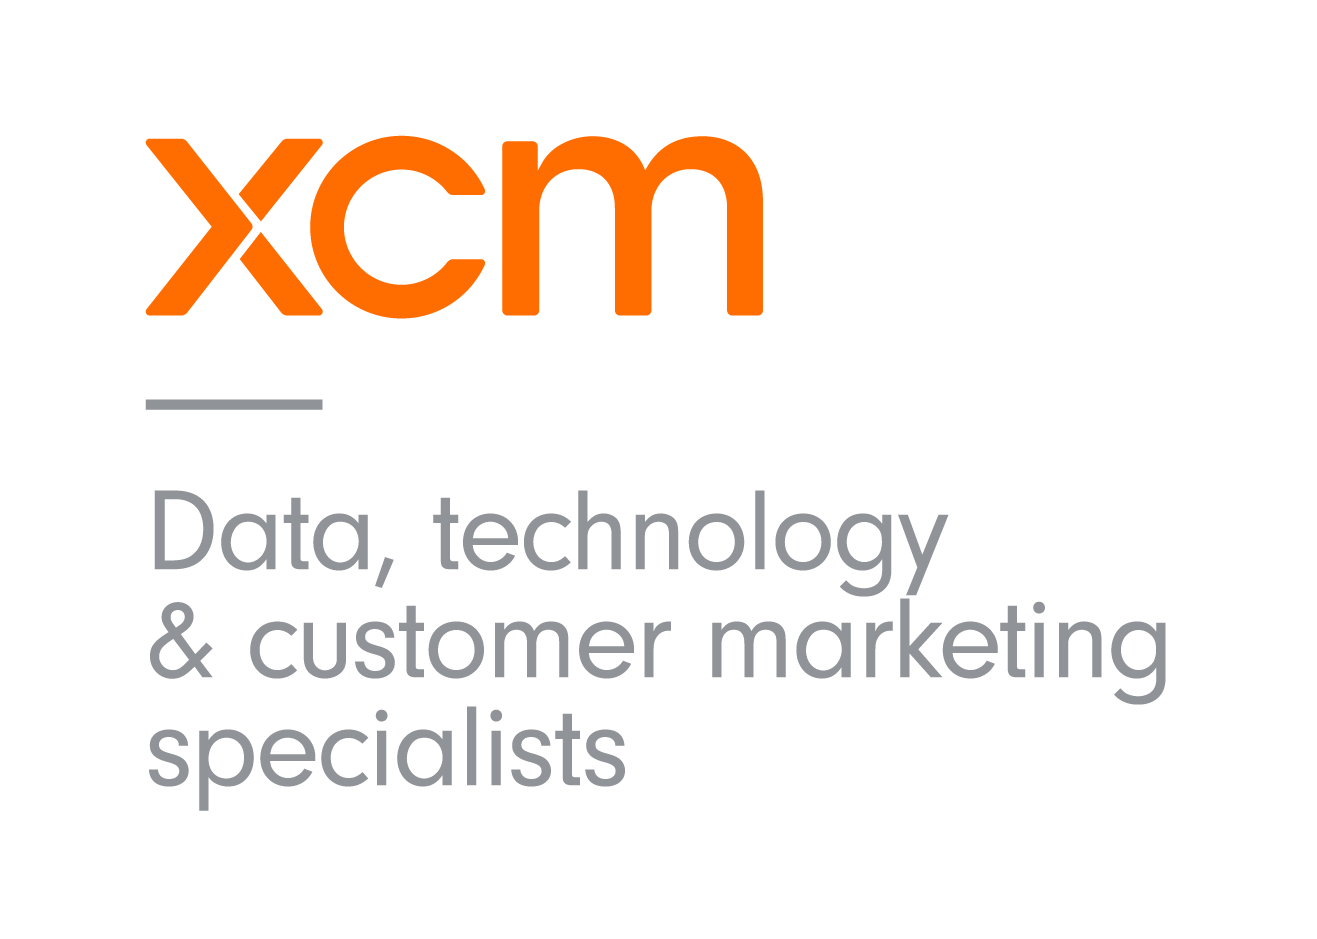 Data, technology & customer marketing specialists